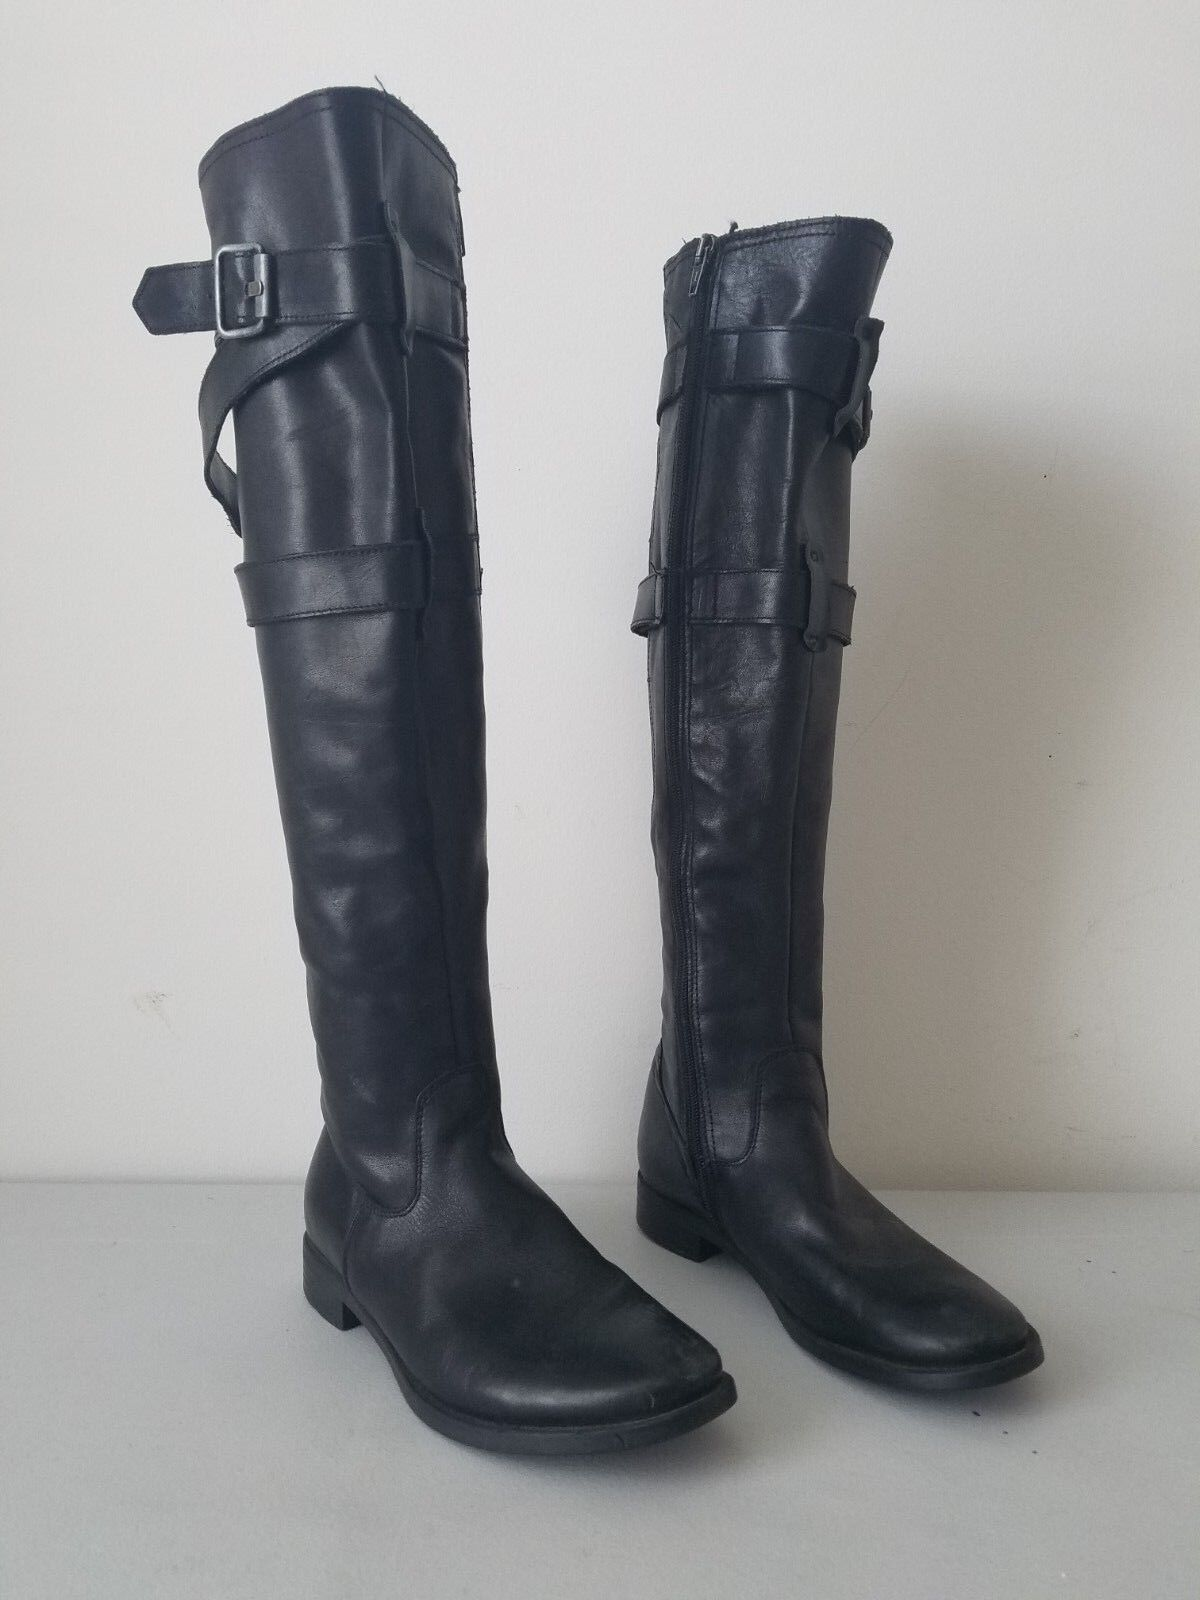 CIAK over the knee black leather boots